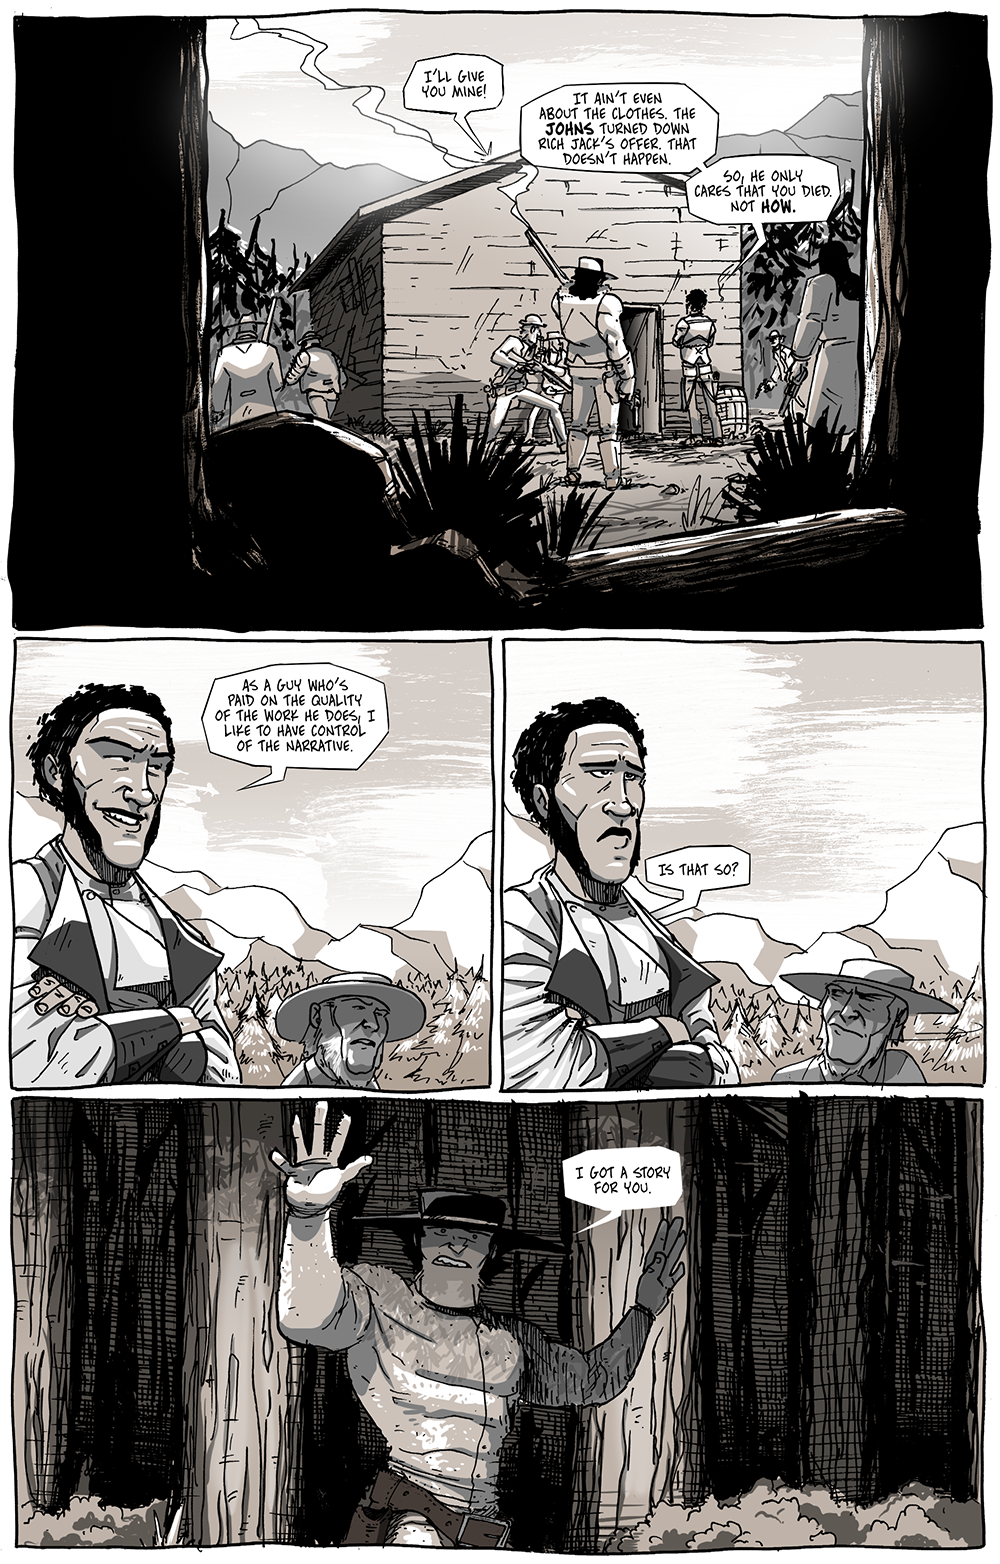 The page takes on a whole different tone when you read the first panel as Bishop negotiating with a sentient cabin.